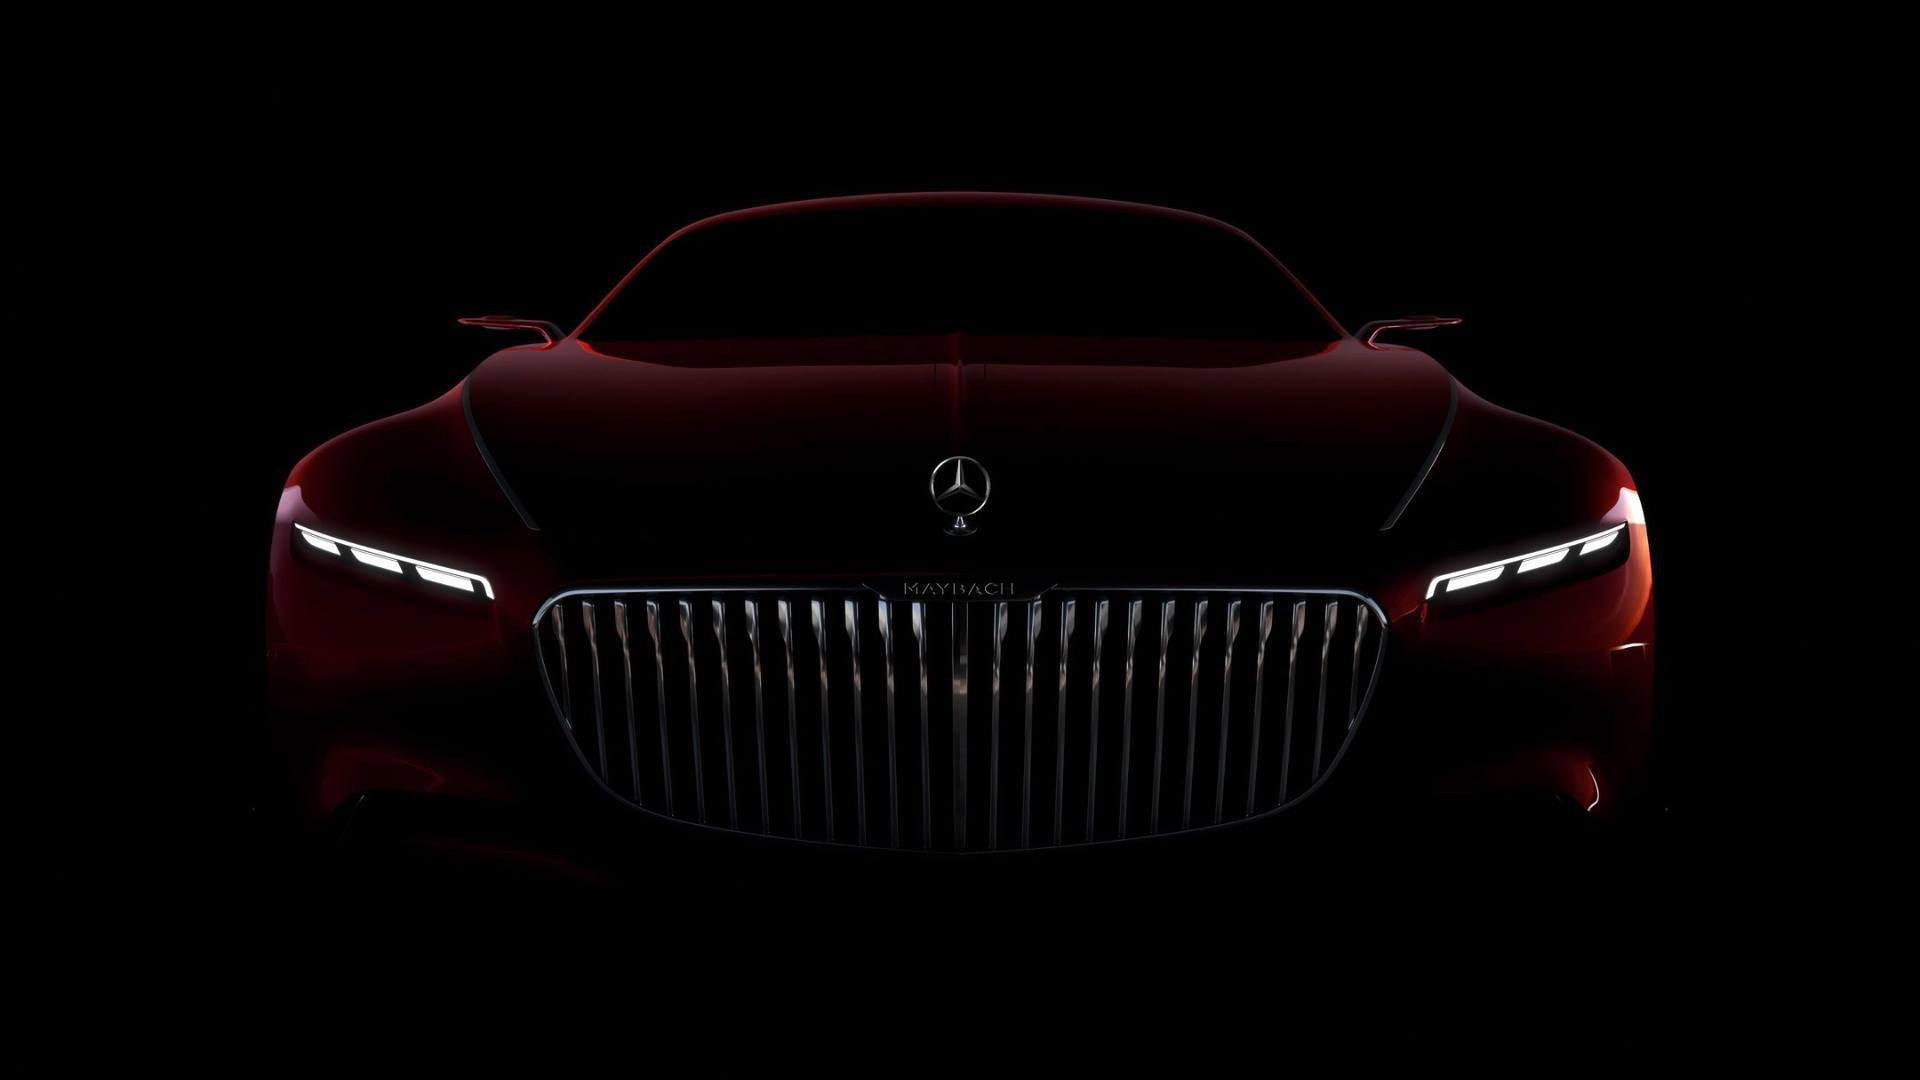 Vision Mercedes-Maybach 6 teaser shows spectacular front fascia